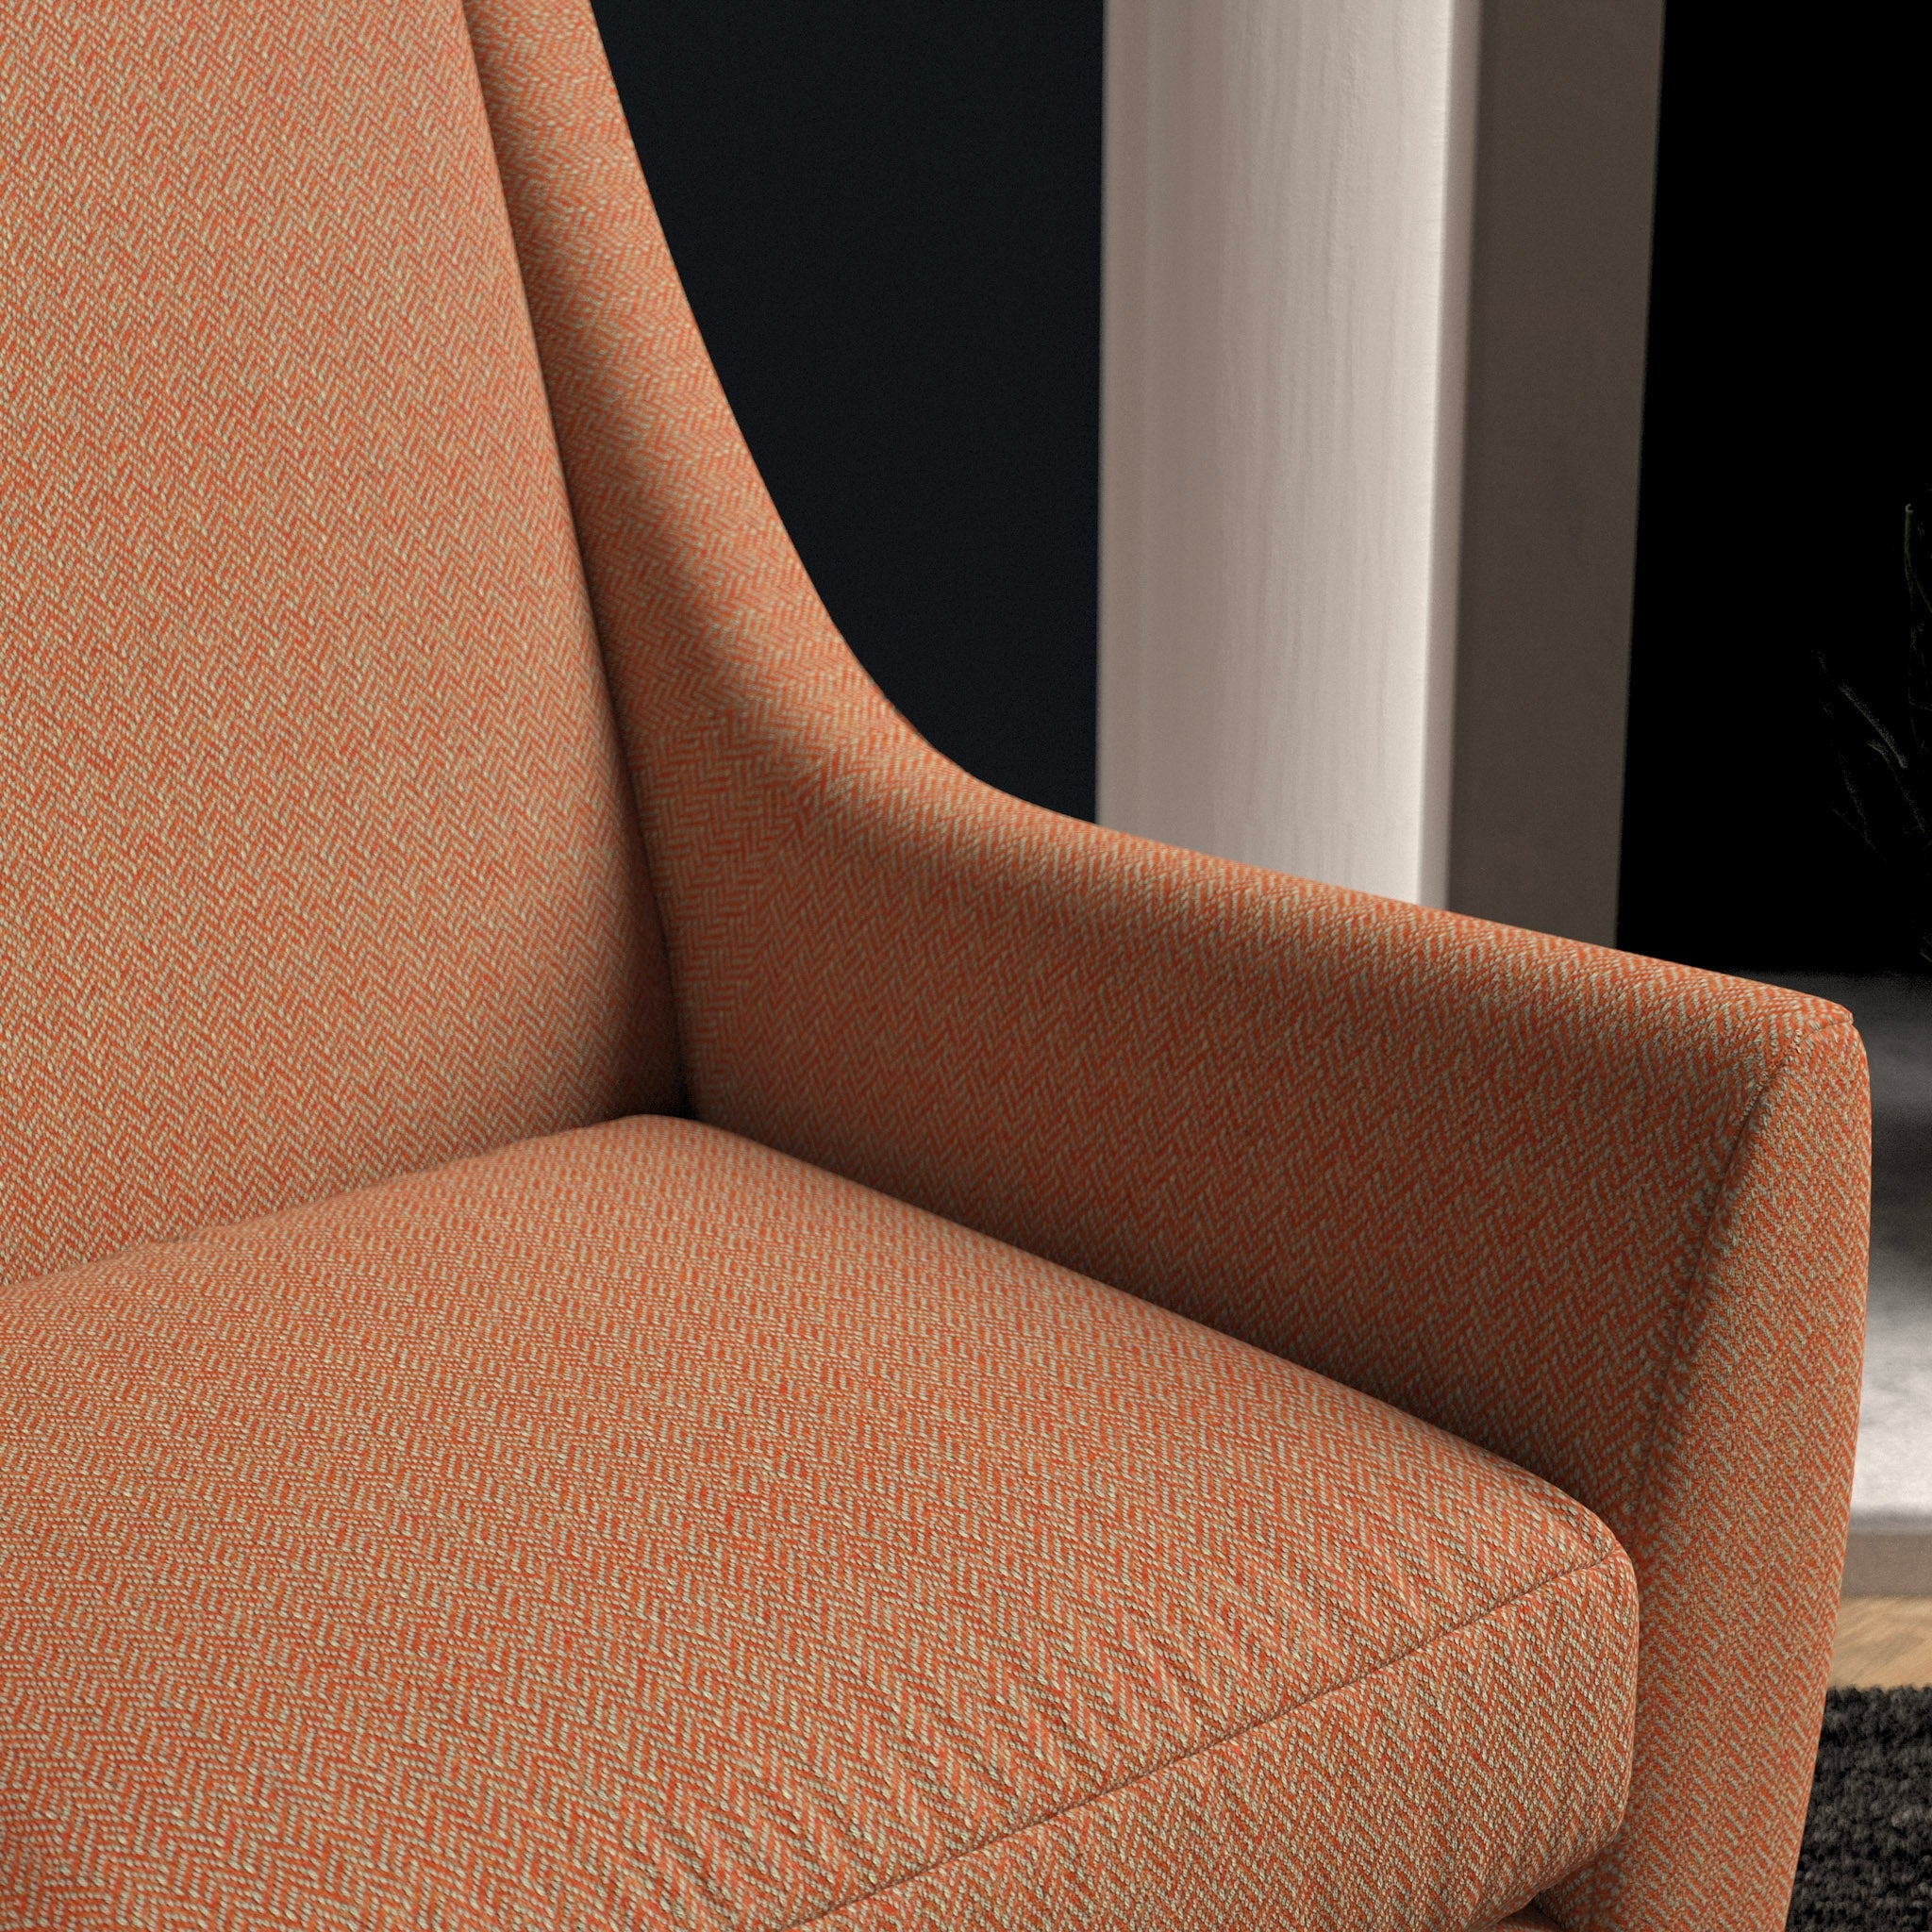 Chair upholstered in a bright orange herringbone wool weave upholstery fabric